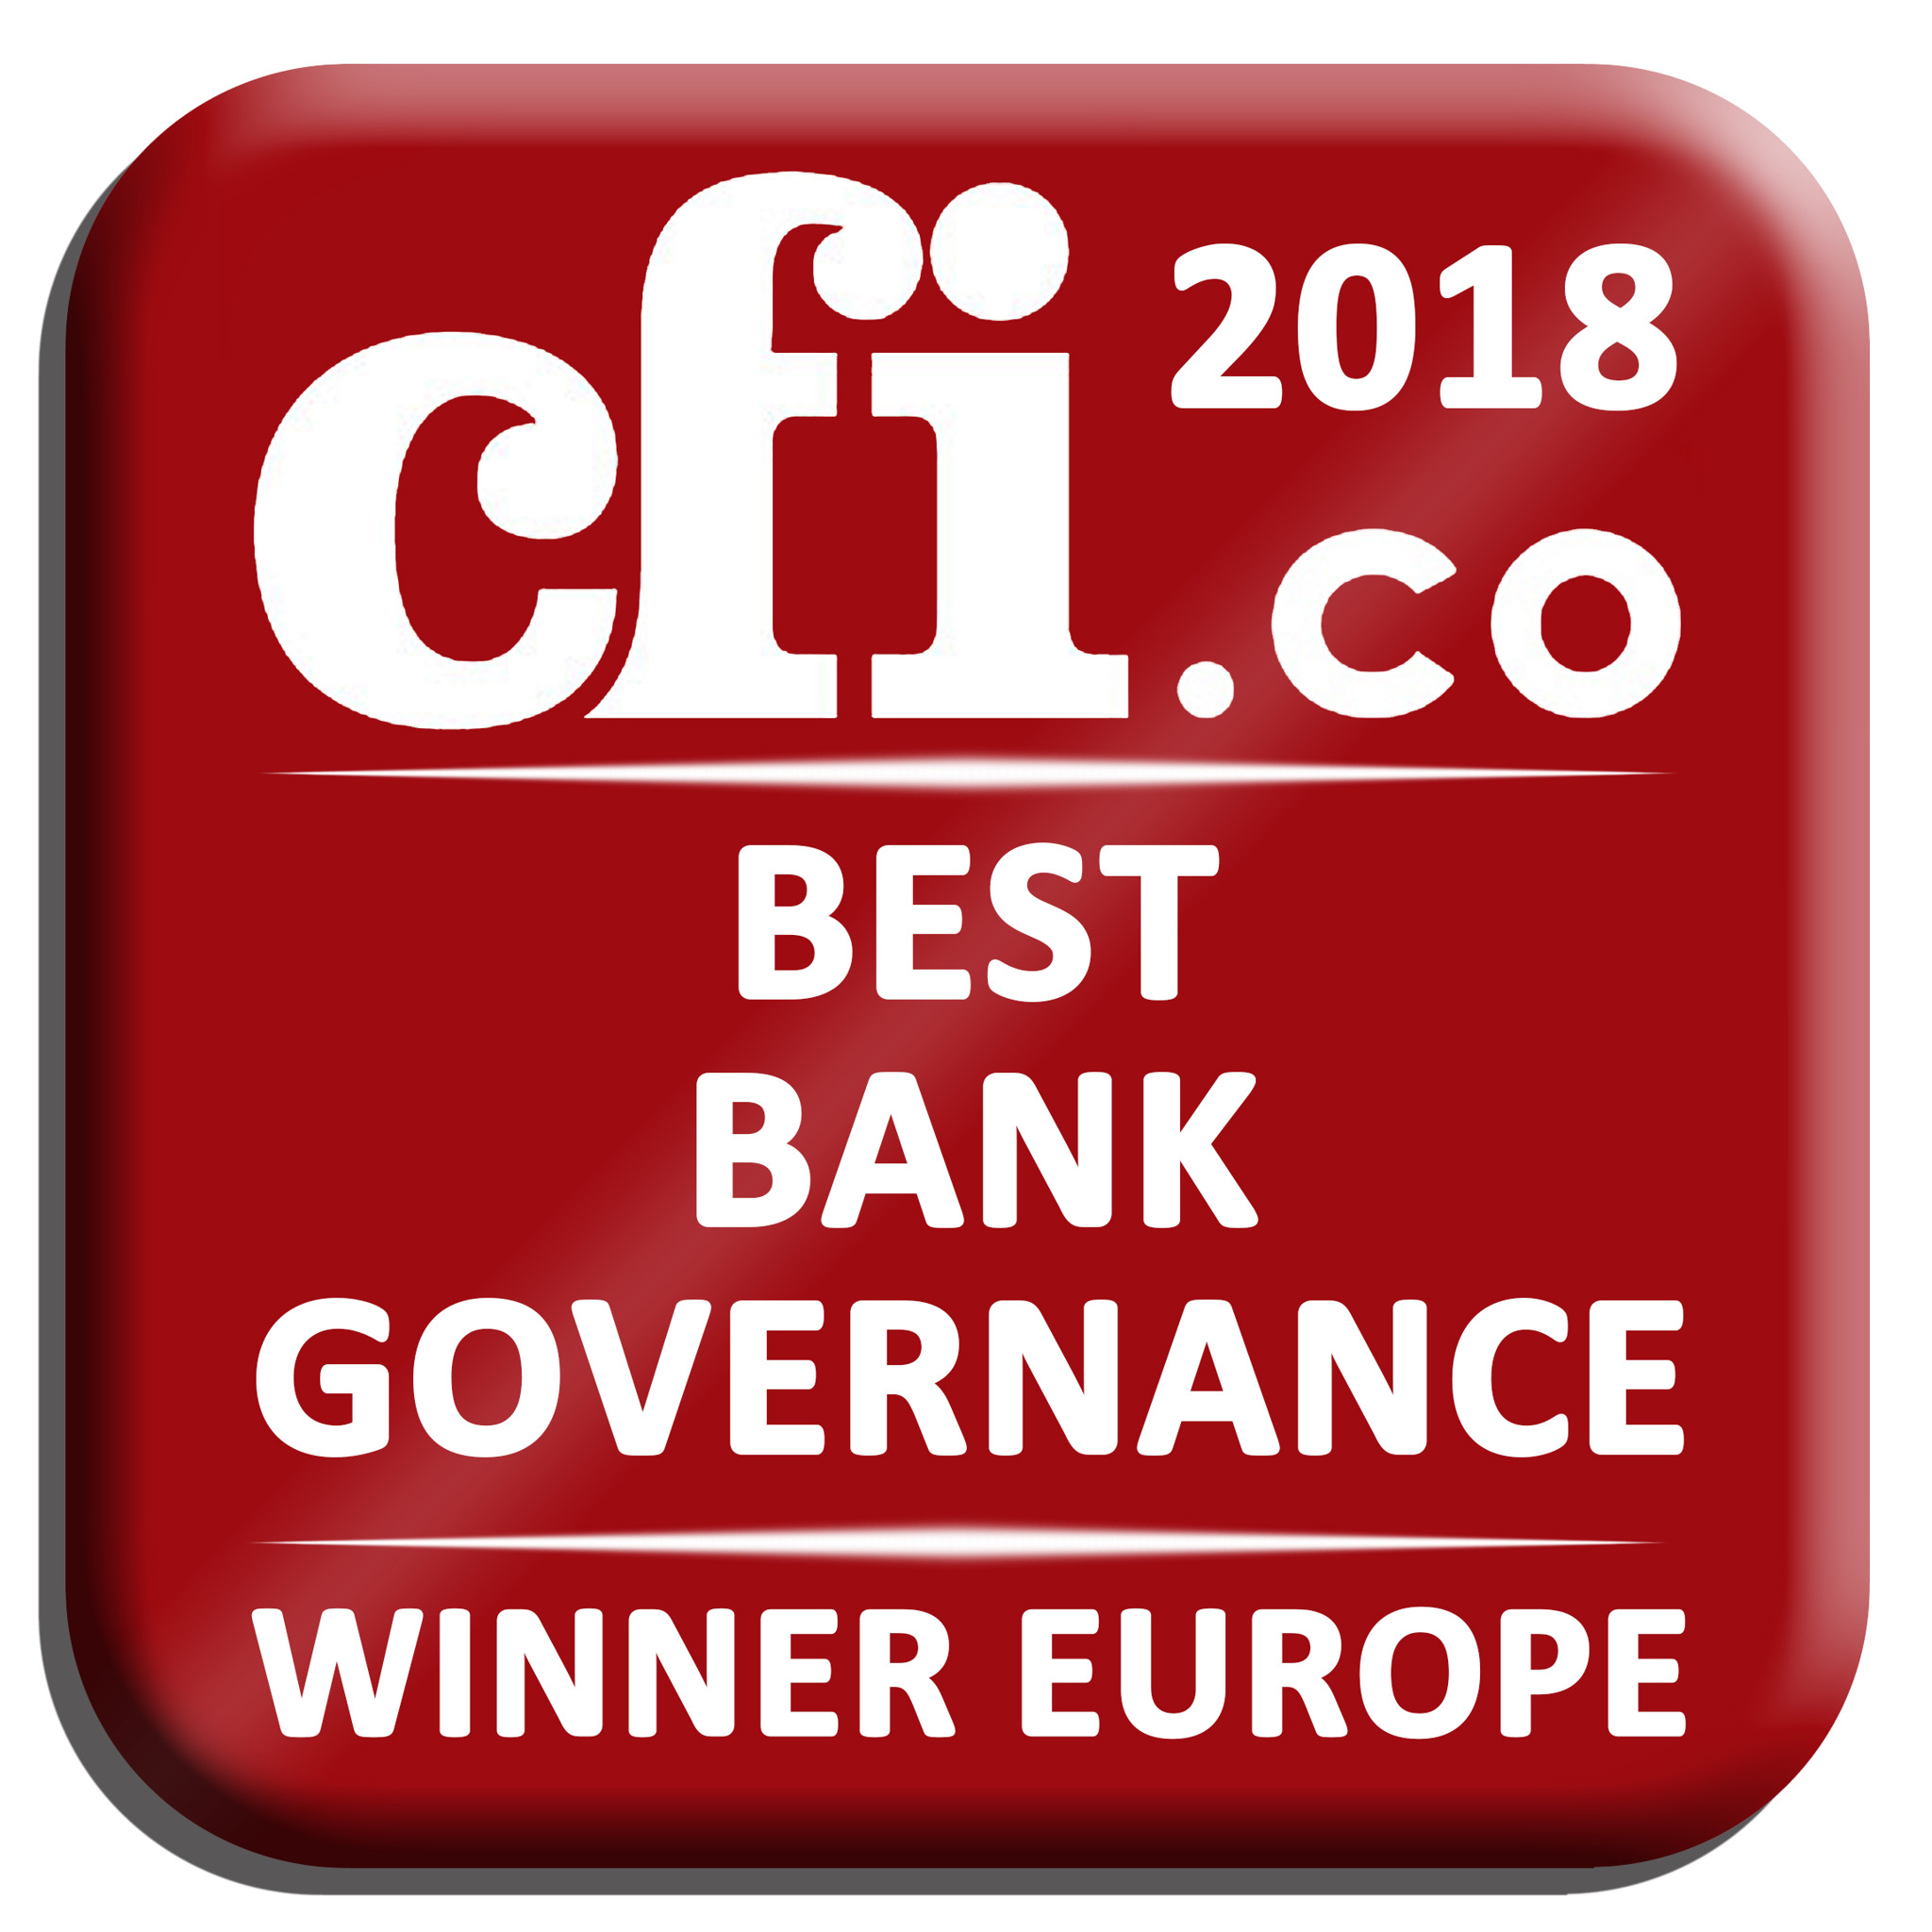 KBC recognised for 'Best Bank Governance in Europe'